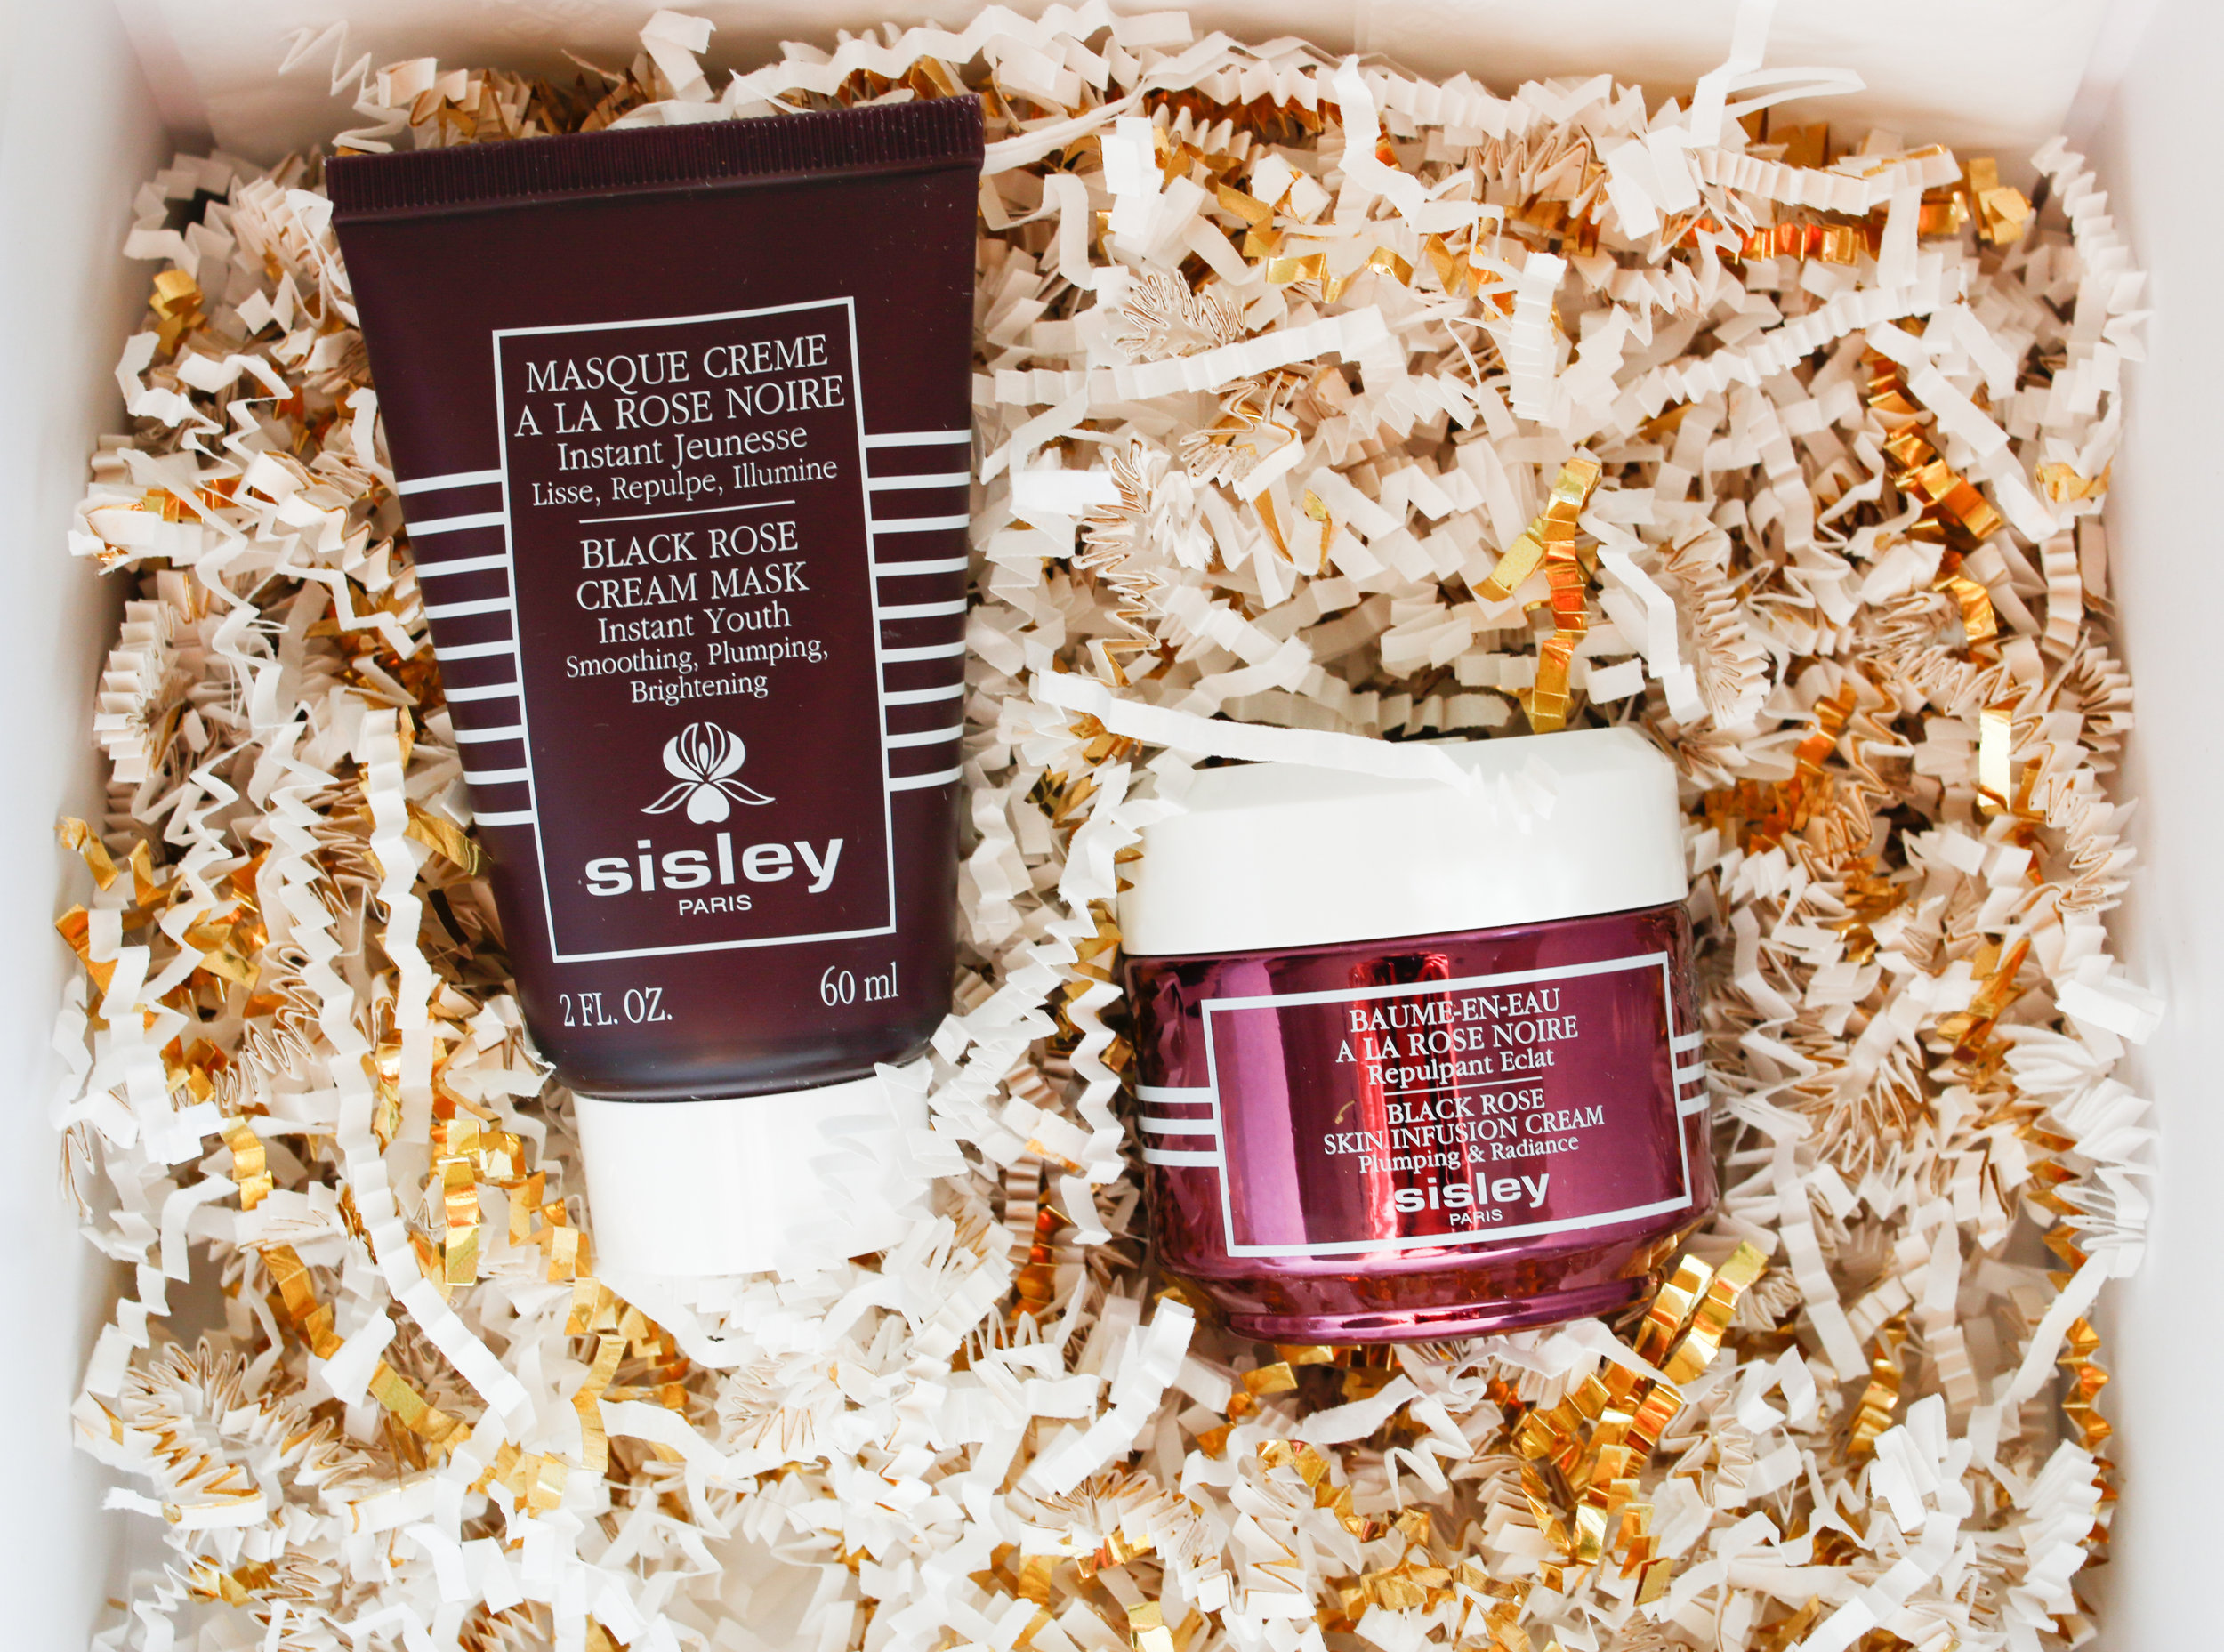 sisley paris rose mask and oil